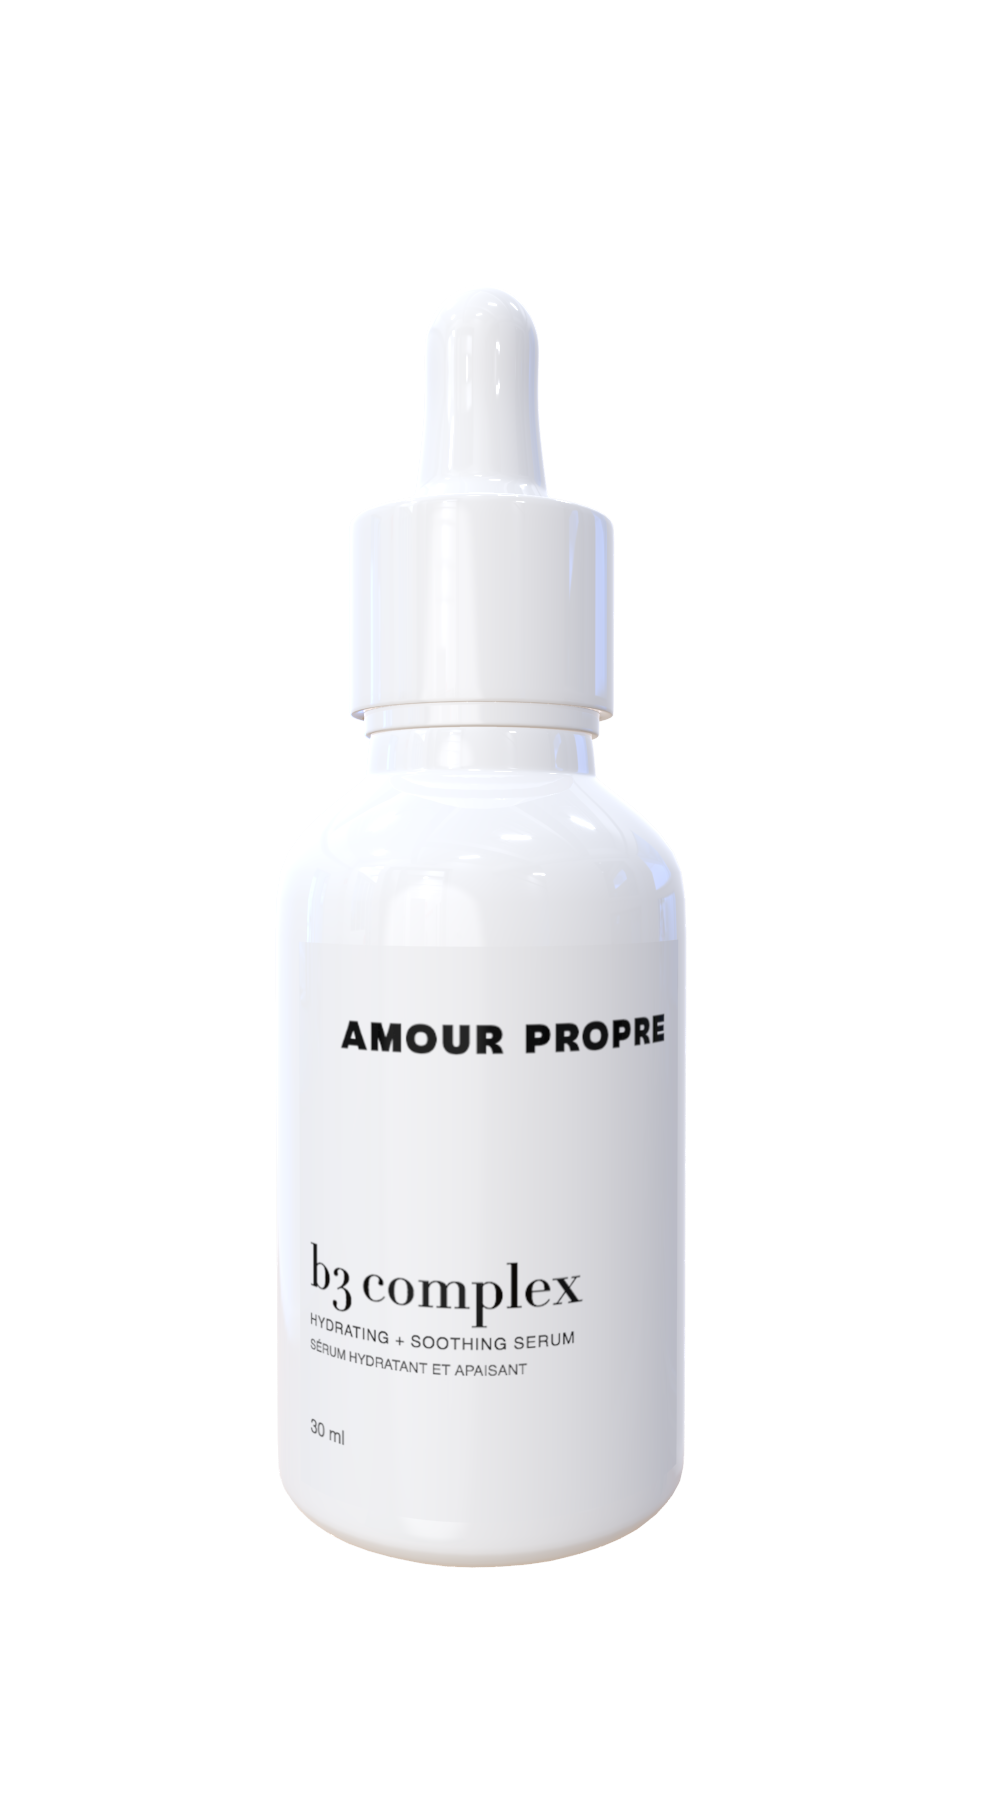 B3 COMPLEX   AMOUR PROPRE   NATURAL SKINCARE & BEAUTY   NATURAL & ORGANIC HYALURONIC ACID & NIACINAMIDE SERUM FORMULATED WITH ALOE GEL TO BENEFIT ALL SKIN TYPES INCLUDING DRY SKIN, SENSITIVE SKIN, COMBINATION SKIN, ACNE-PRONE SKIN, OILY SKIN & ACNE-PRONE SKIN   HYDRATING SERUM FOR ROSACEA REDNESS AND SENSITIVE SKIN   BEST HYDRATING SERUM   BEST NATURAL HYALURONIC ACID SERUM   BEST NIACINAMIDE SERUM   BEST SERUM FOR DEHYDRATED SKIN AND FINE LINES   CANADIAN SKINCARE BRANDS   NATURAL INDEPENDENT BEAUTY BRANDS   NATURAL ORGANIC SKINCARE BRANDS   MONTREAL SKINCARE BRANDS   BEST SERUM FOR LARGE PORES   BEST SERUM FOR FLAKY SKIN   SERUM HYDRATANT POUR TOUS TYPES DE PEAUX DONT PEAU SENSIBLE PEAU SÈCHE PEAU DÉSHYDRATÉEE   PRODUITS ECO-RESPONSABLES BIOLOGIQUES FAITS AU QUEBECS   PRODUITS NATURELS COSMETIQUES FAIT AU QUÉBEC   SÉRUMS NATURELS BIOLOGIQUES